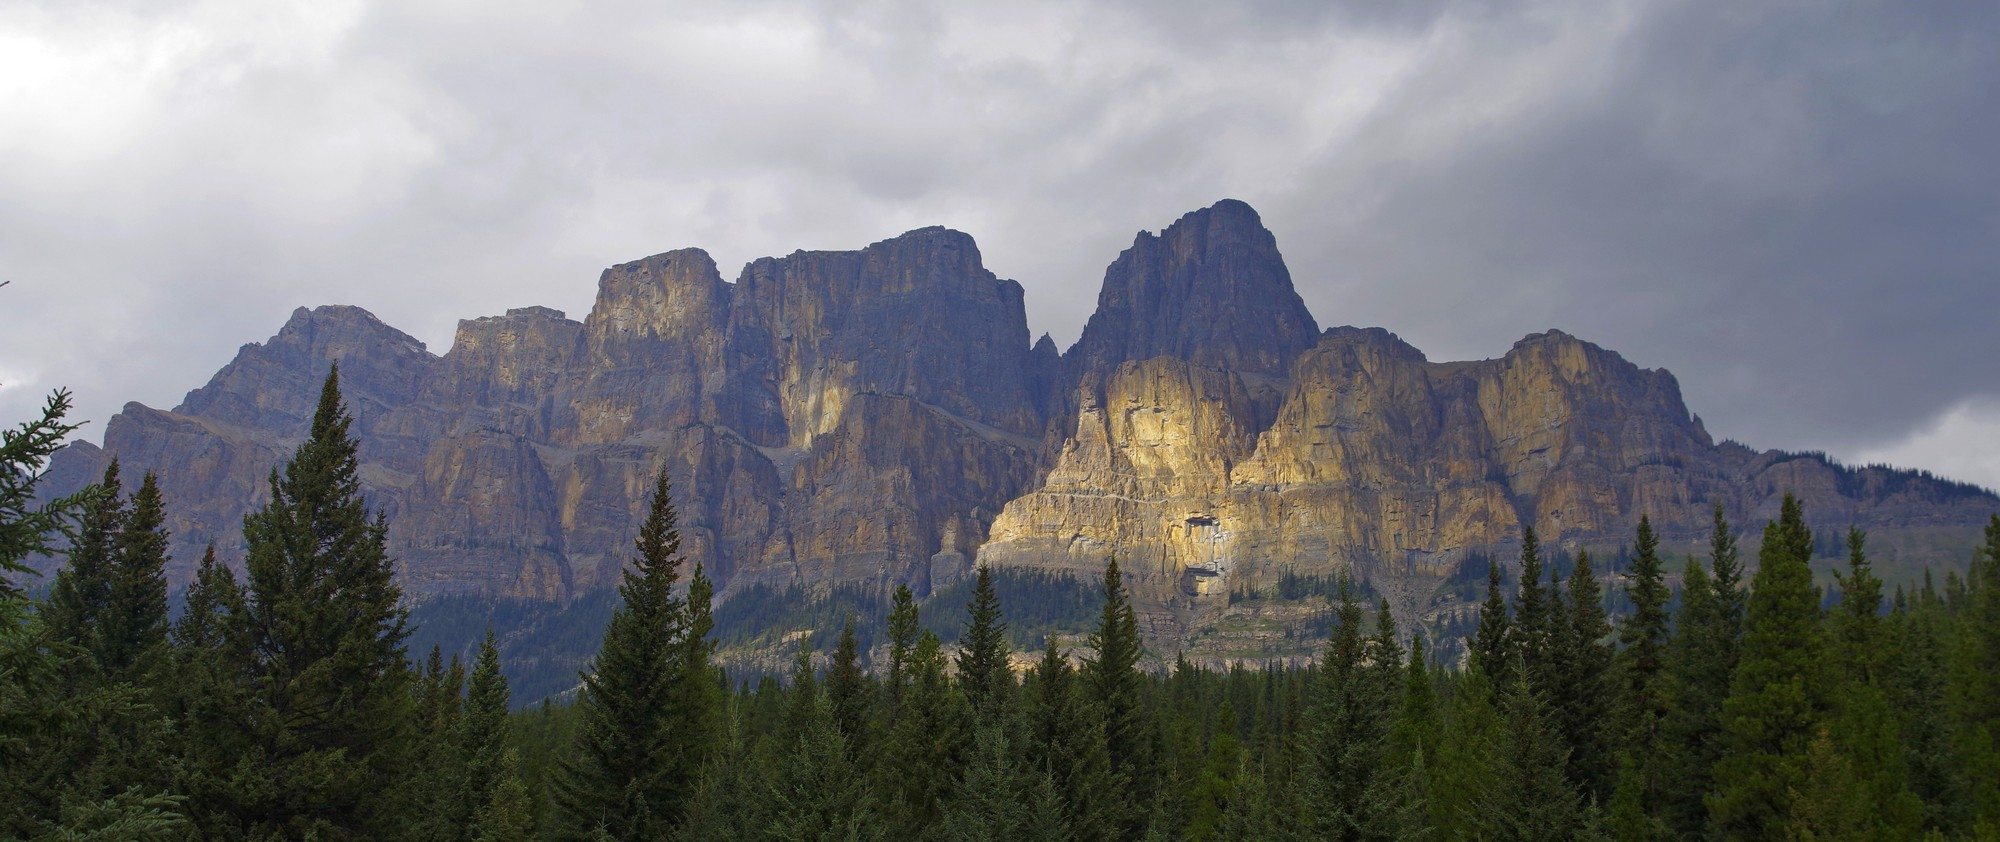 The Castle mountain